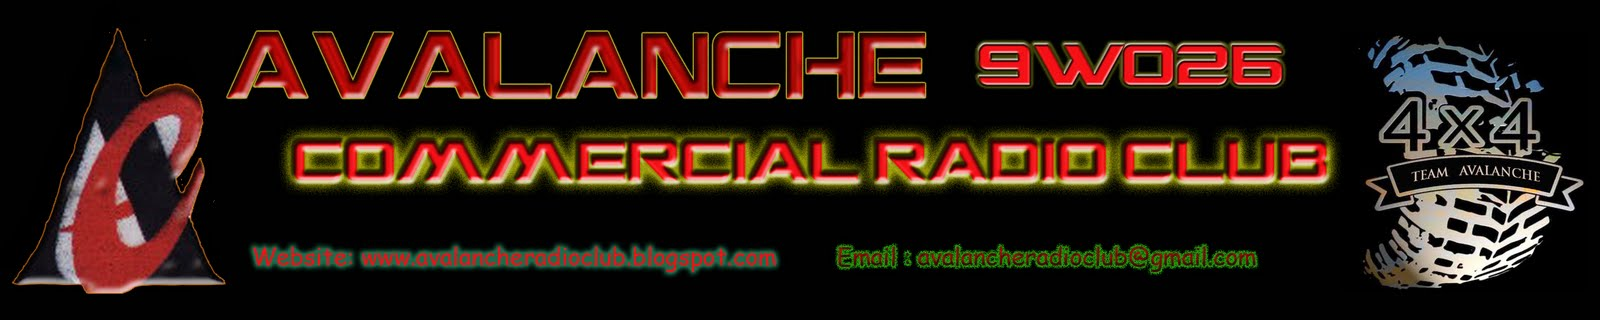 Avalanche Commercial Radio Club